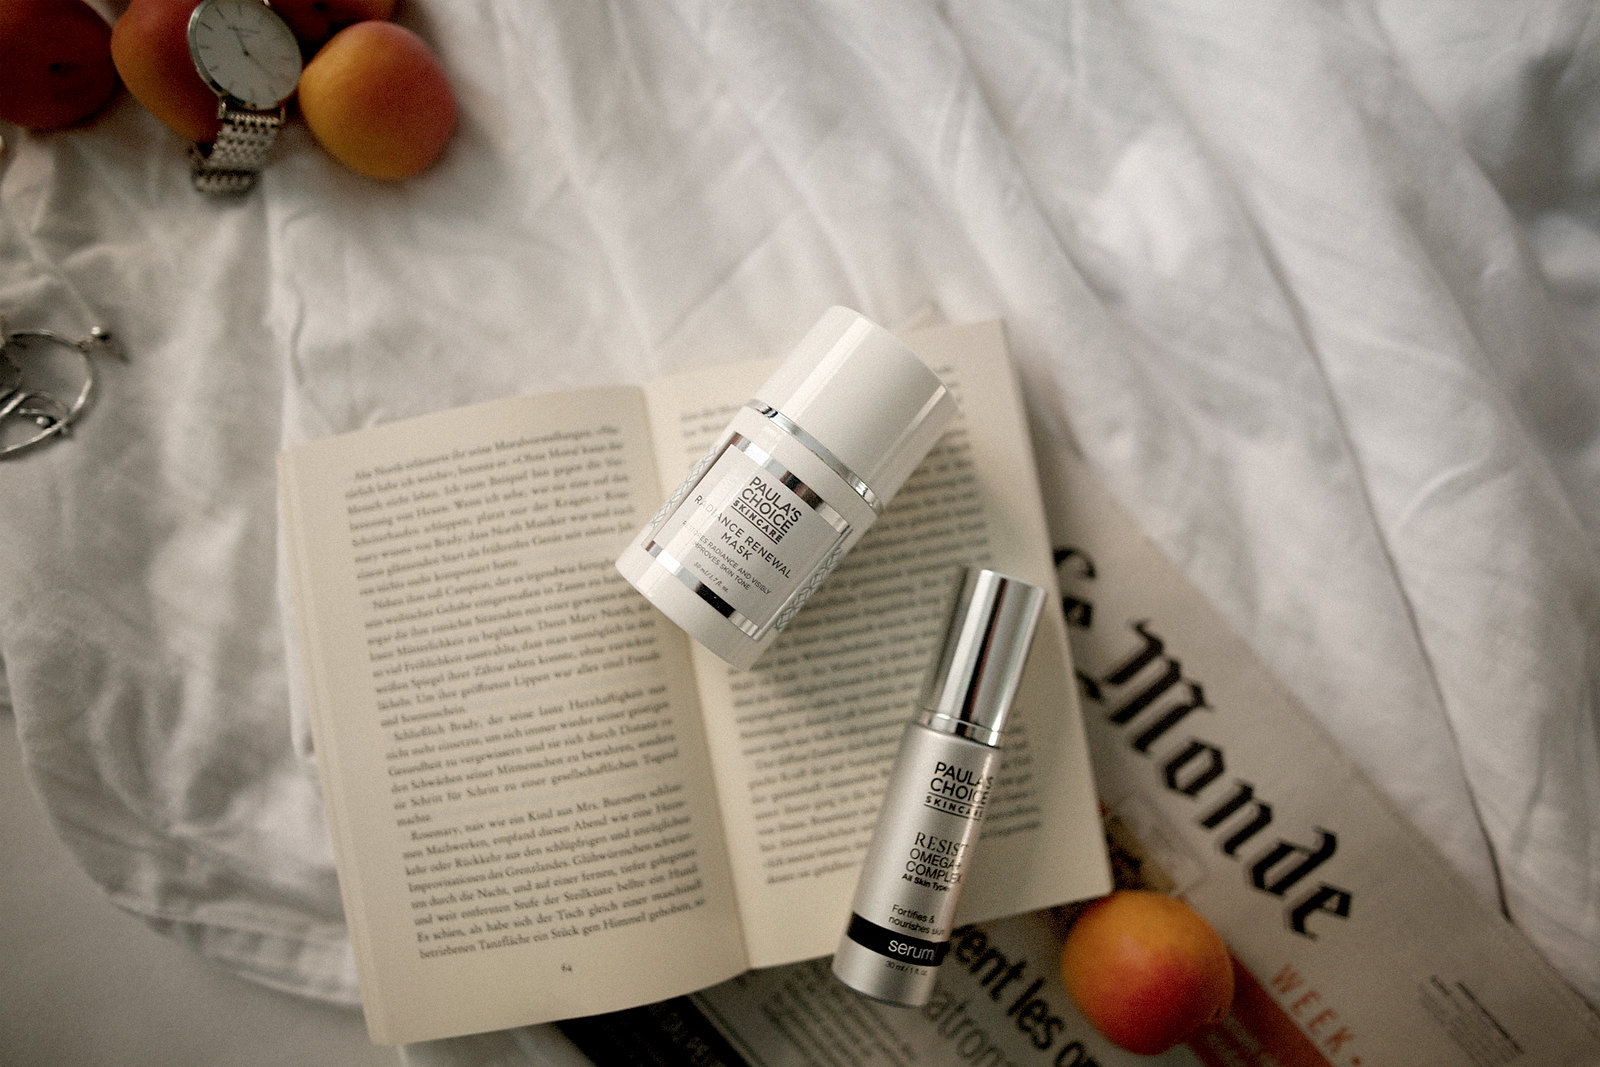 beauty favourites september paula's choice diptyque caudalie fruit home relax reading weekend personal style minimal chic photography beautyblogger germany beauty bloggers cats & dogs beauty blog ricarda schernus max bechmann fotografie film düsseldorf 7